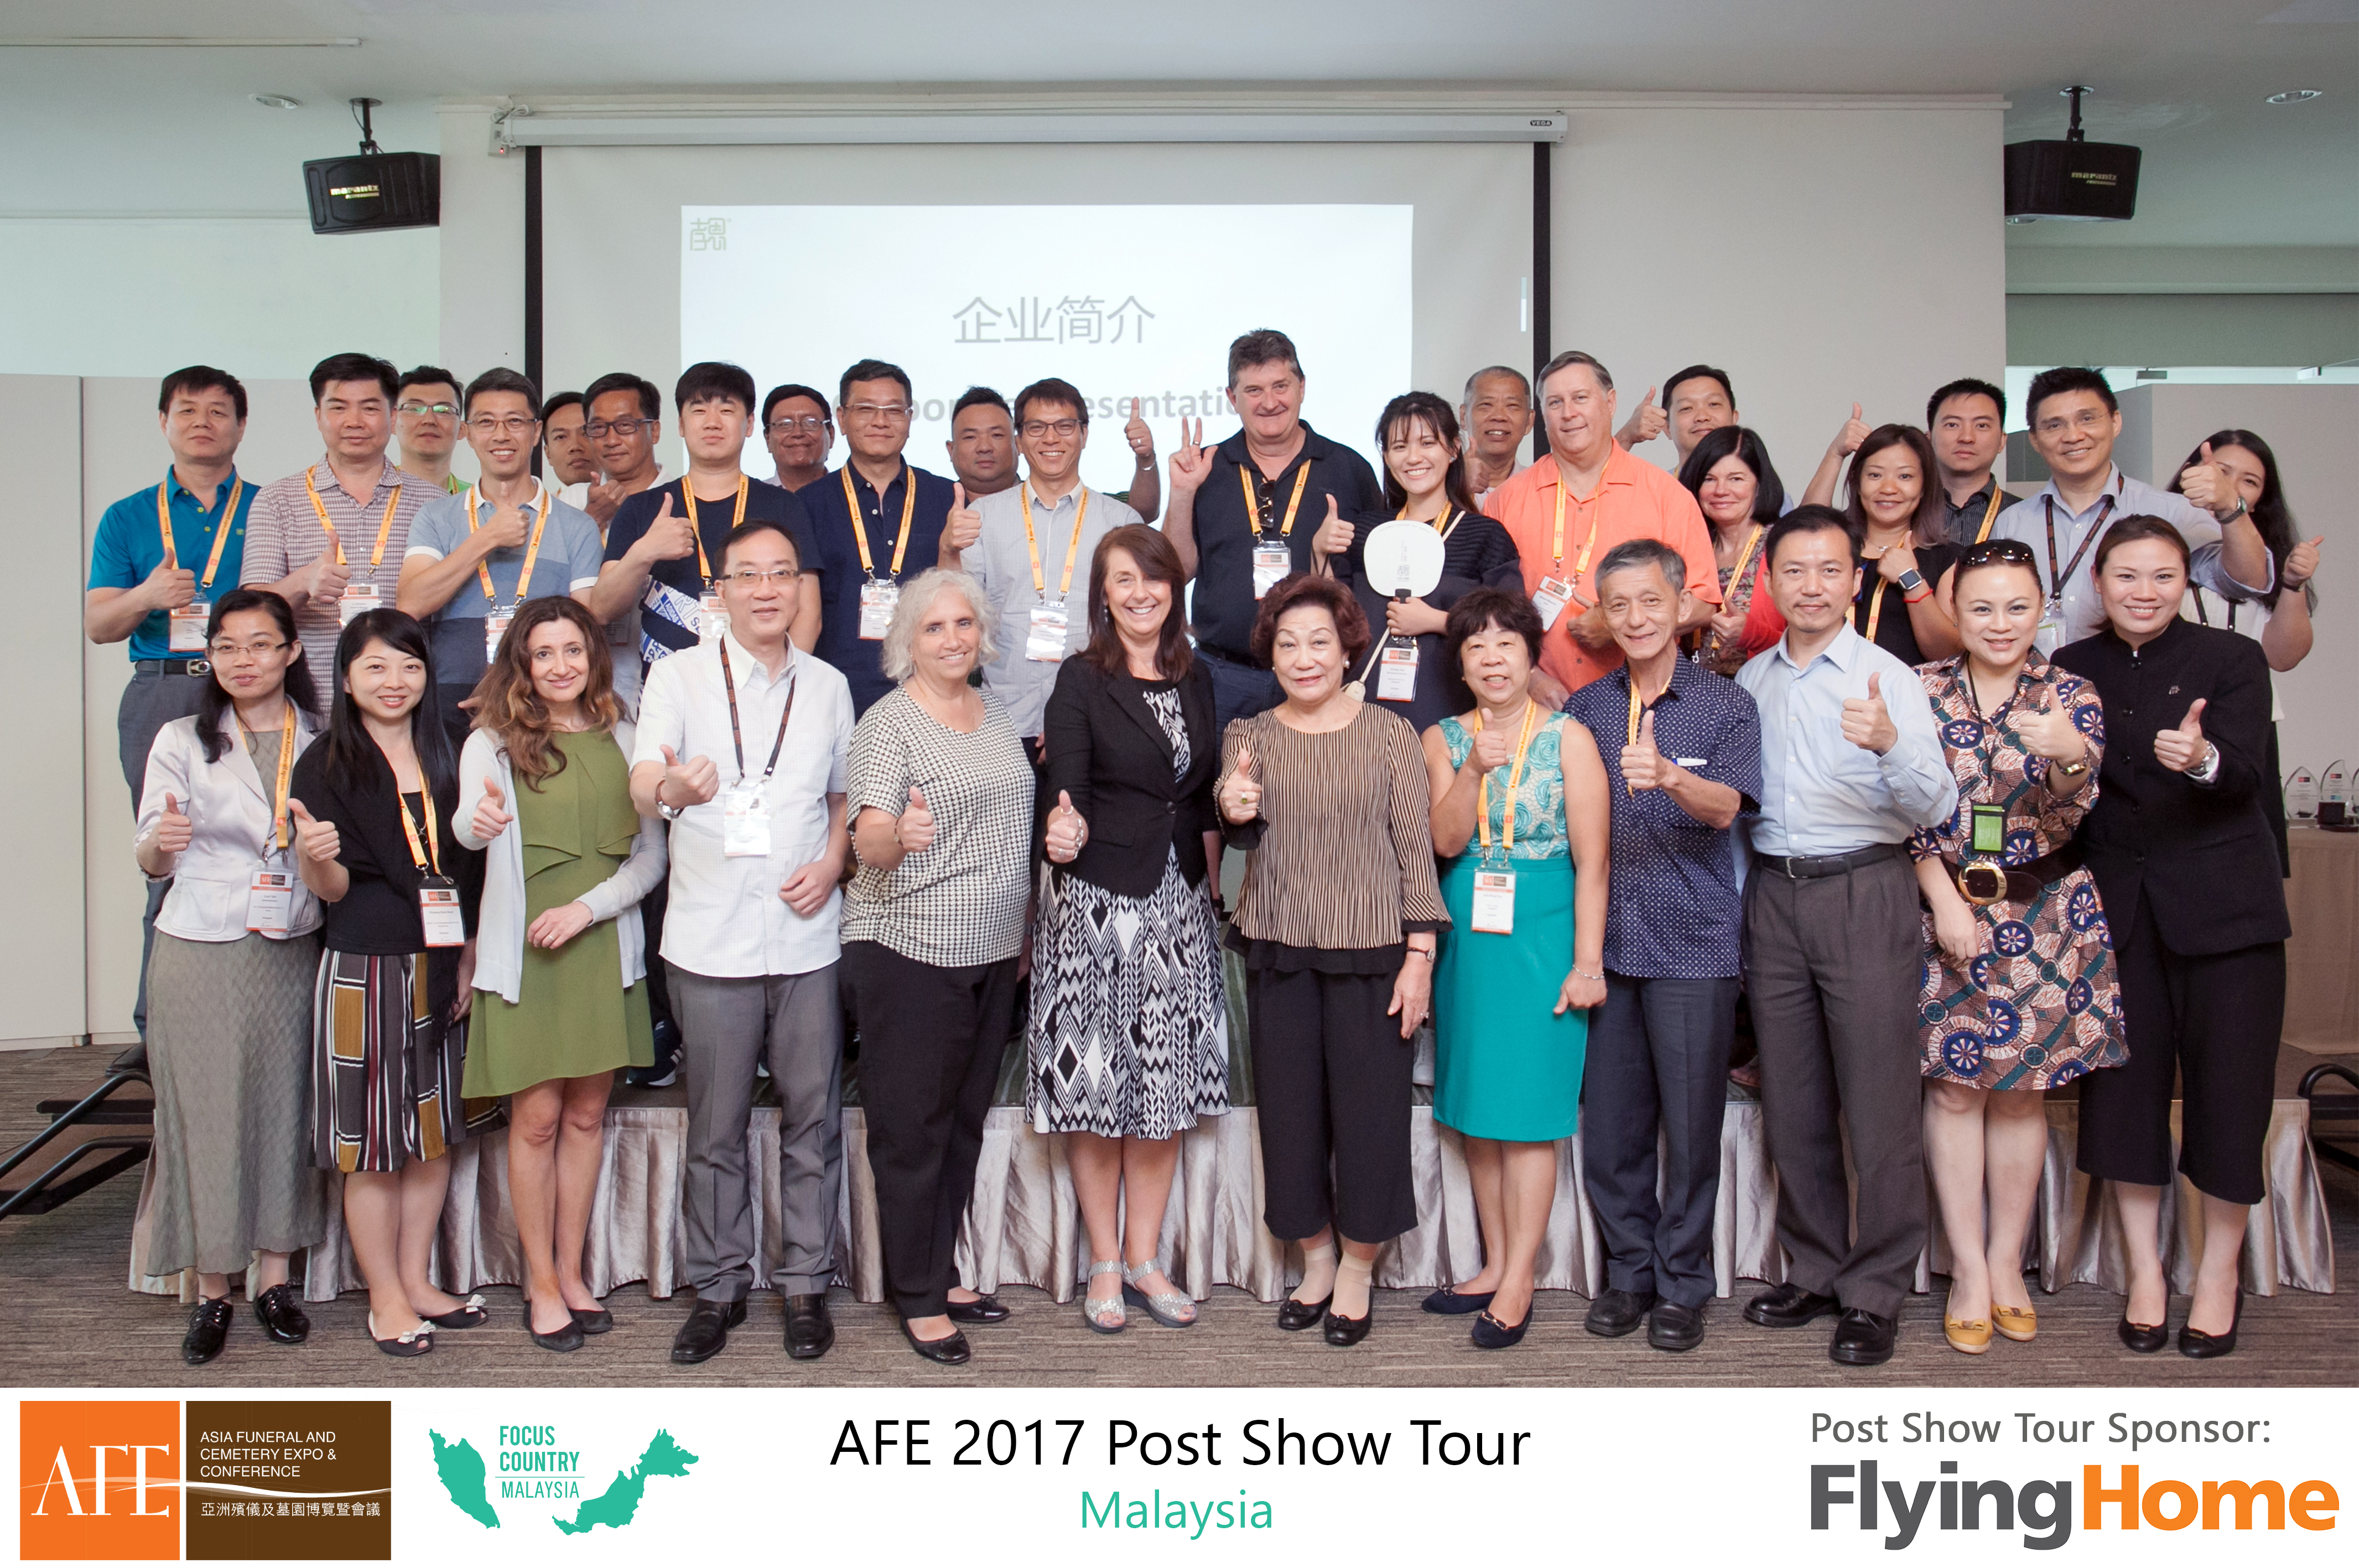 AFE Post Show Tour 2017 Day 3 -30